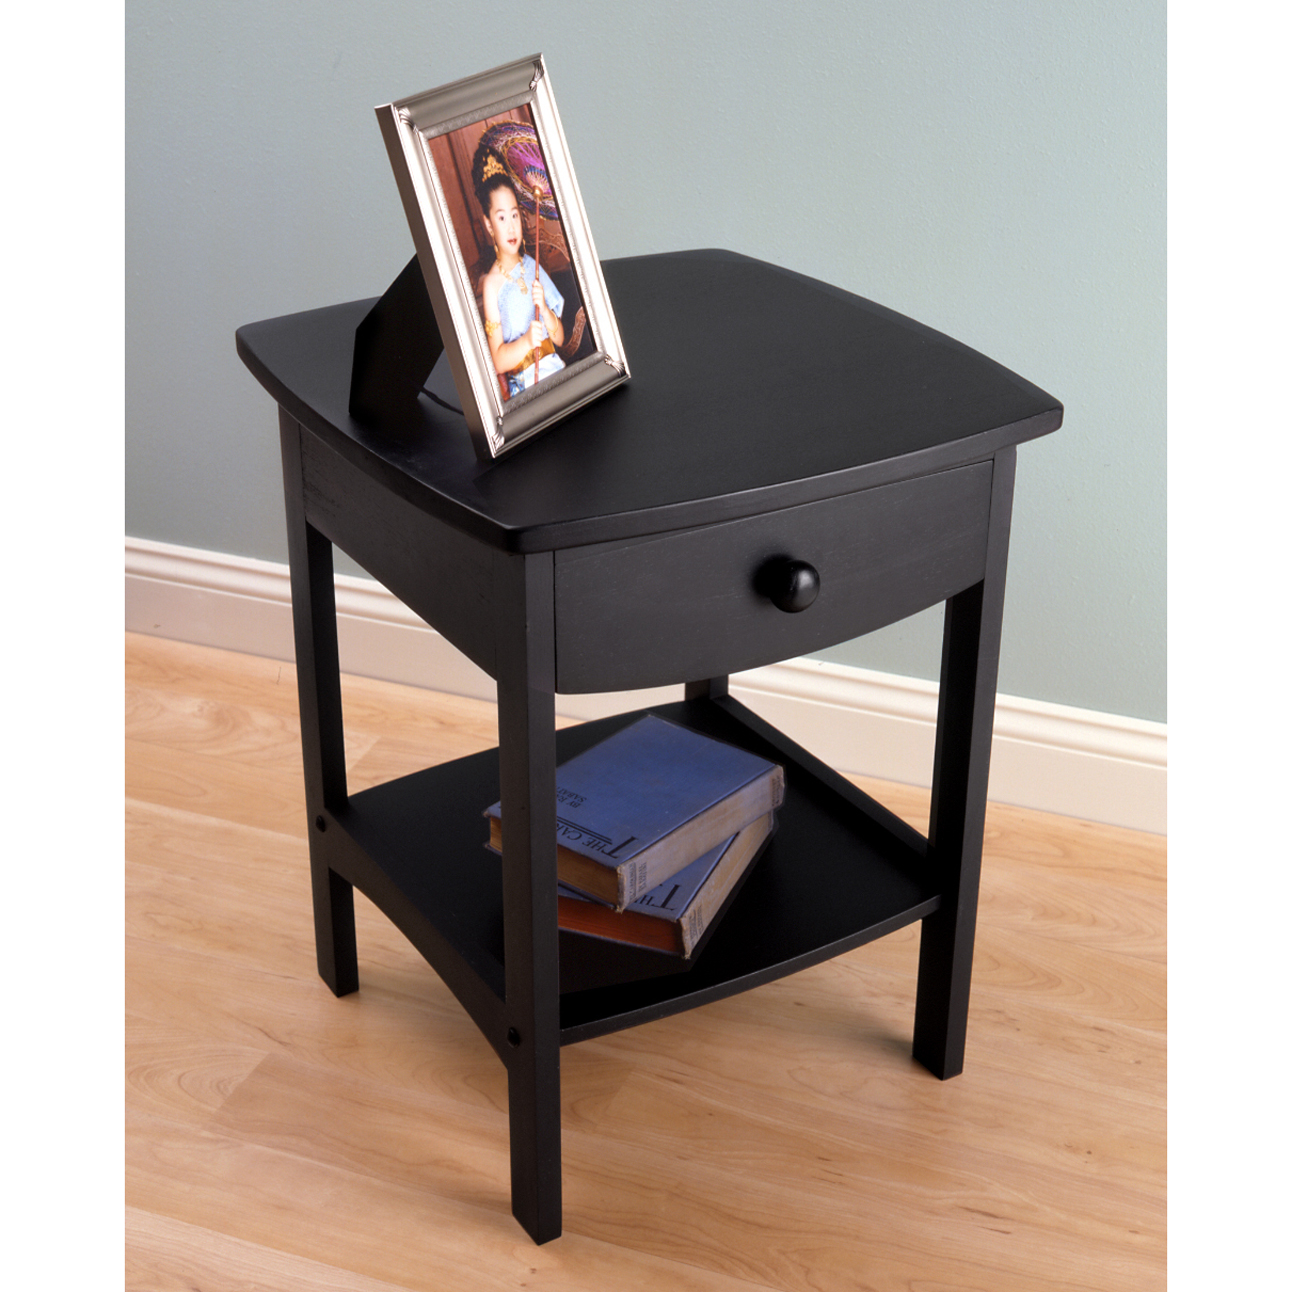 Winsome Trading Curved 1 Drawer Nightstand / End Table Image 3 Of 3